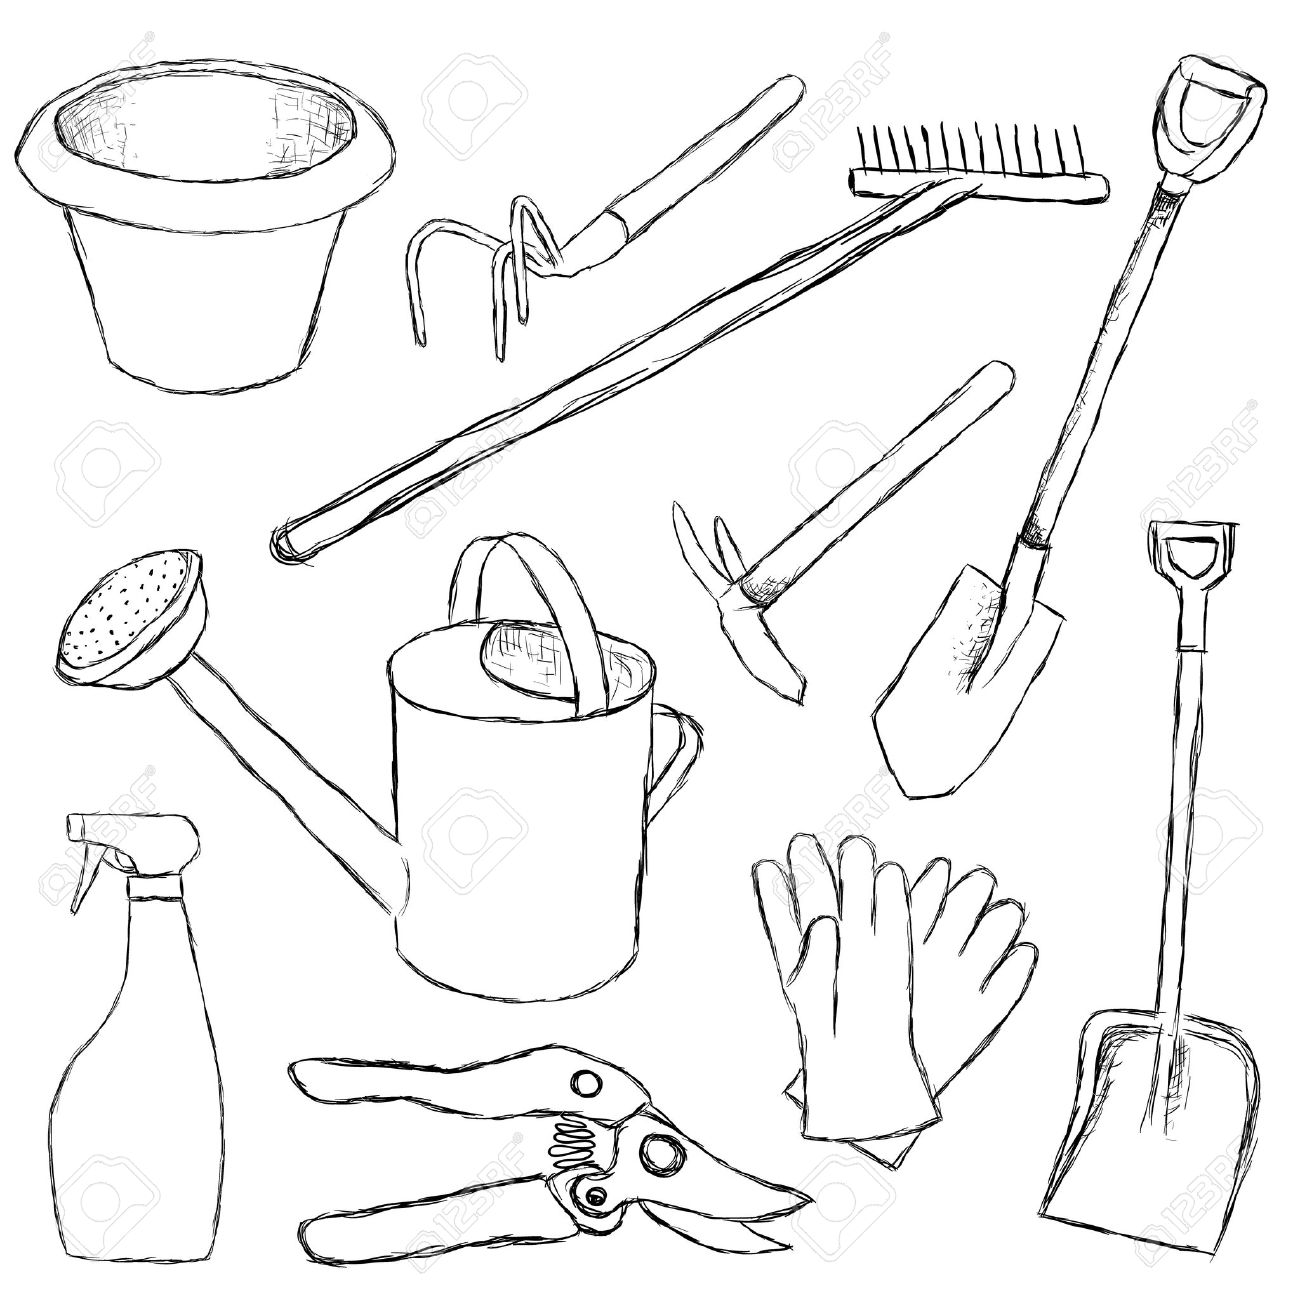 Garden Tools Royalty Free Cliparts, Vectors, And Stock Illustration ...